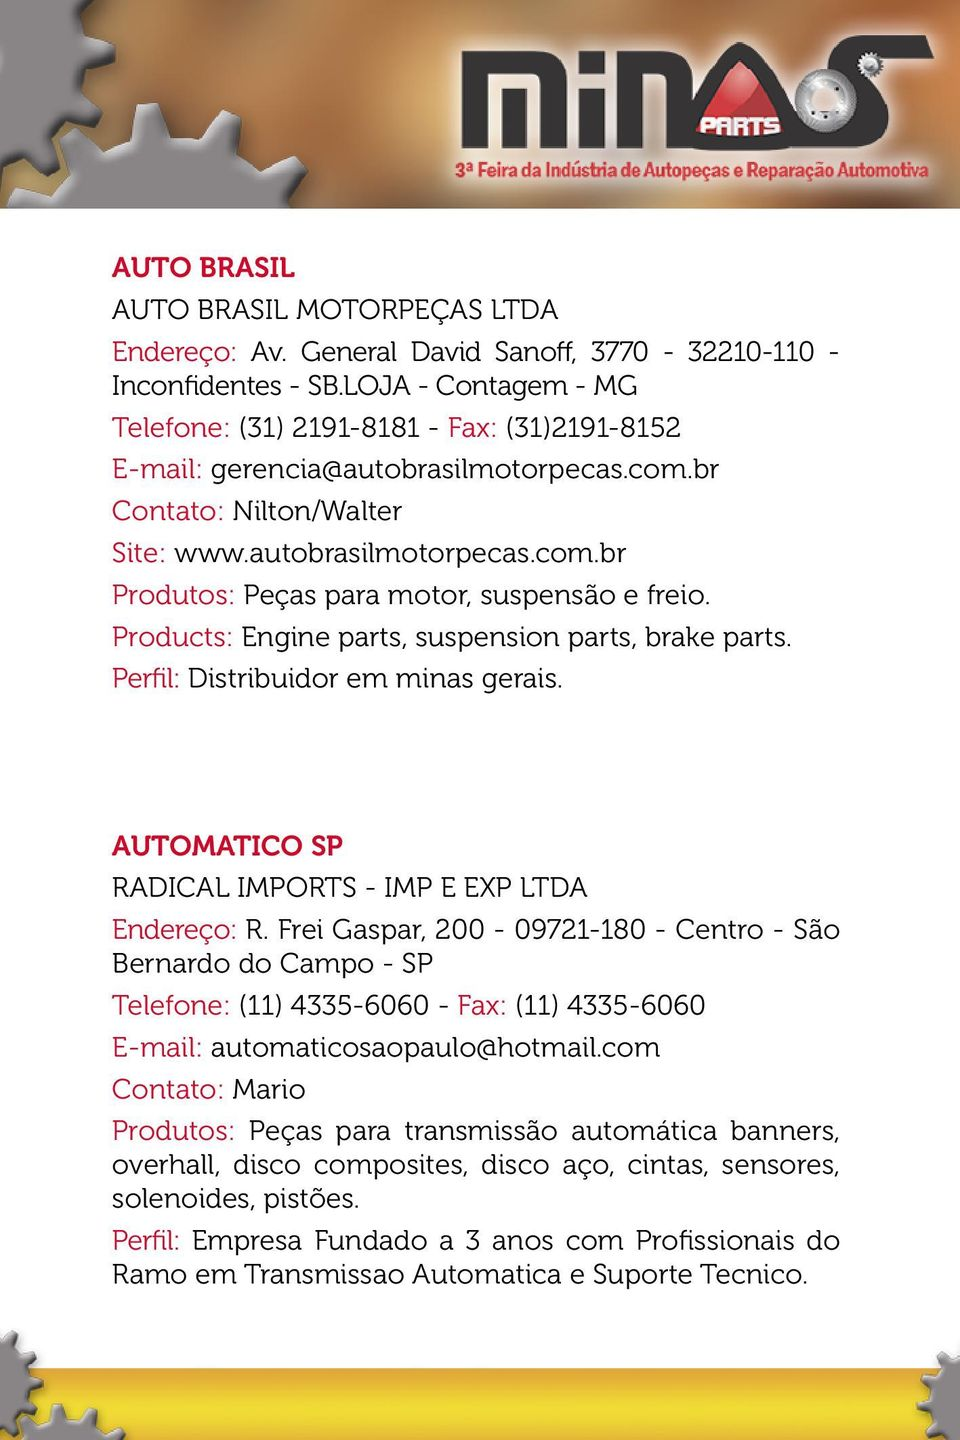 Products: Engine parts, suspension parts, brake parts. Perfil: Distribuidor em minas gerais. AUTOMATICO SP RADICAL IMPORTS - IMP E EXP LTDA Endereço: R.